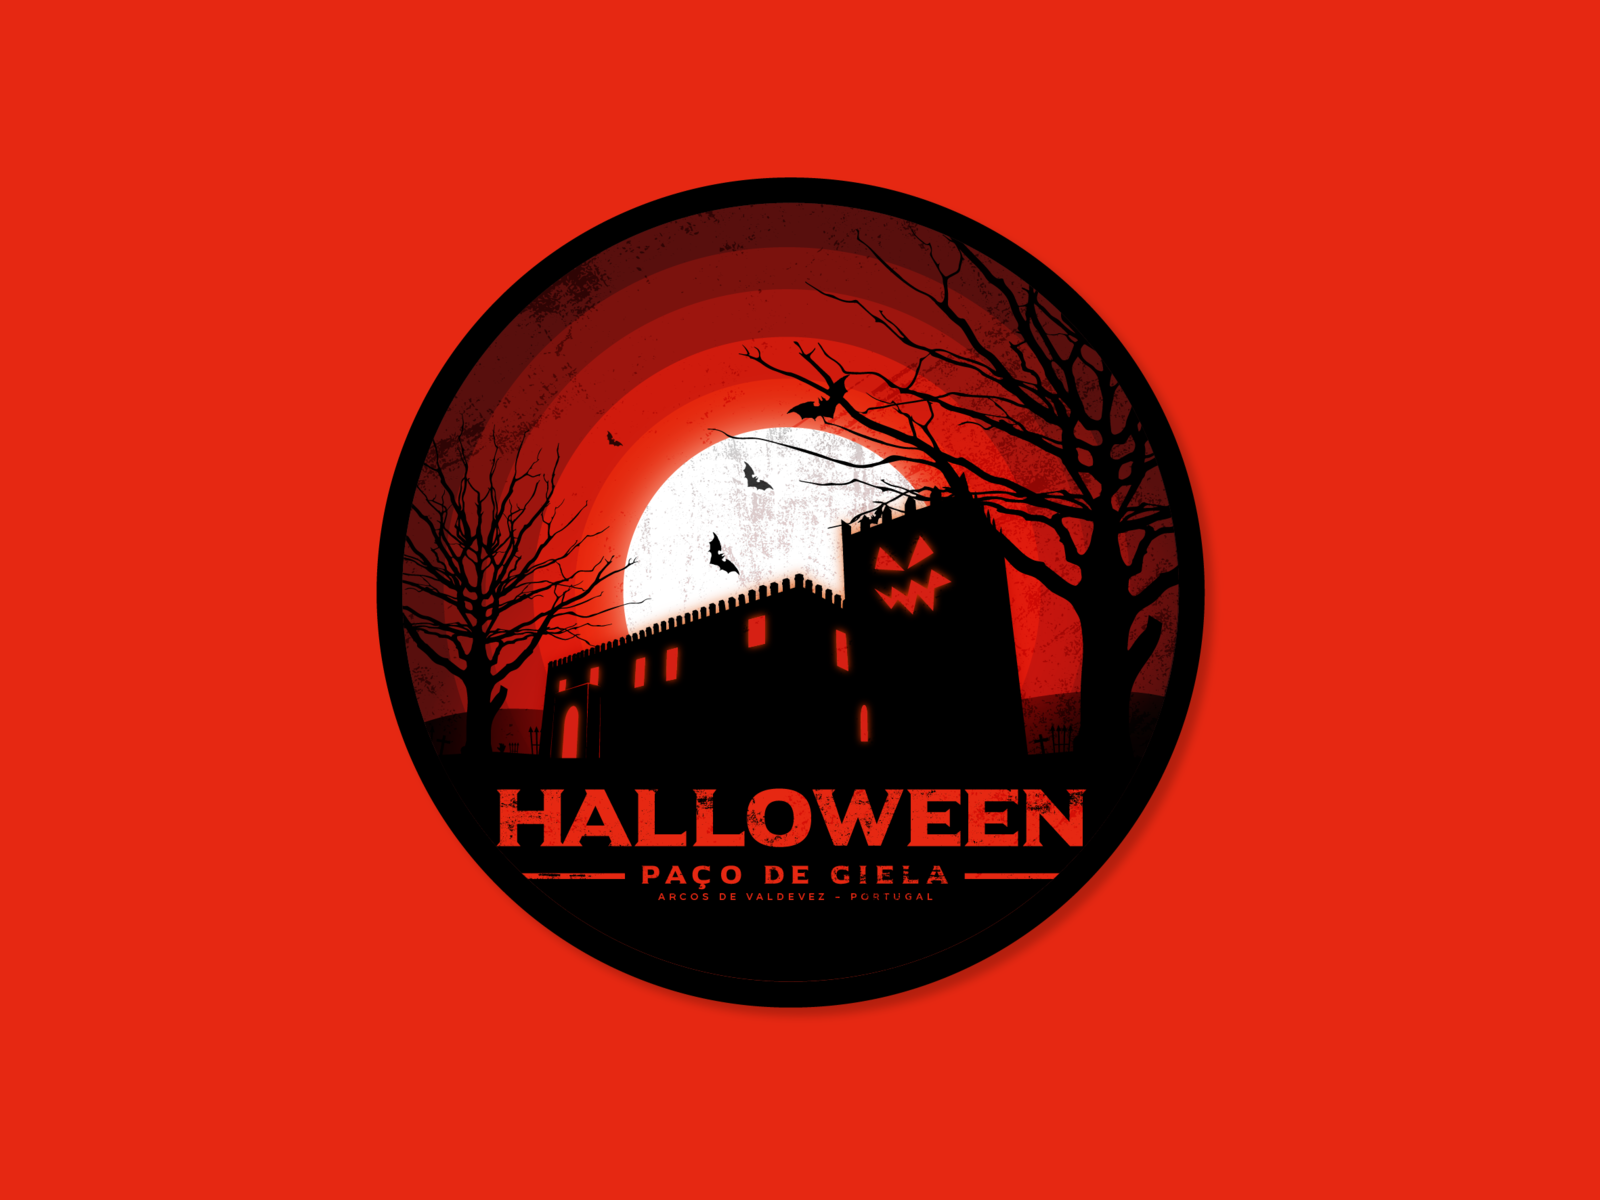 Halloween no Paço de Giela Badge badgedesign badge design halloween illustration badge design adobe illustrator